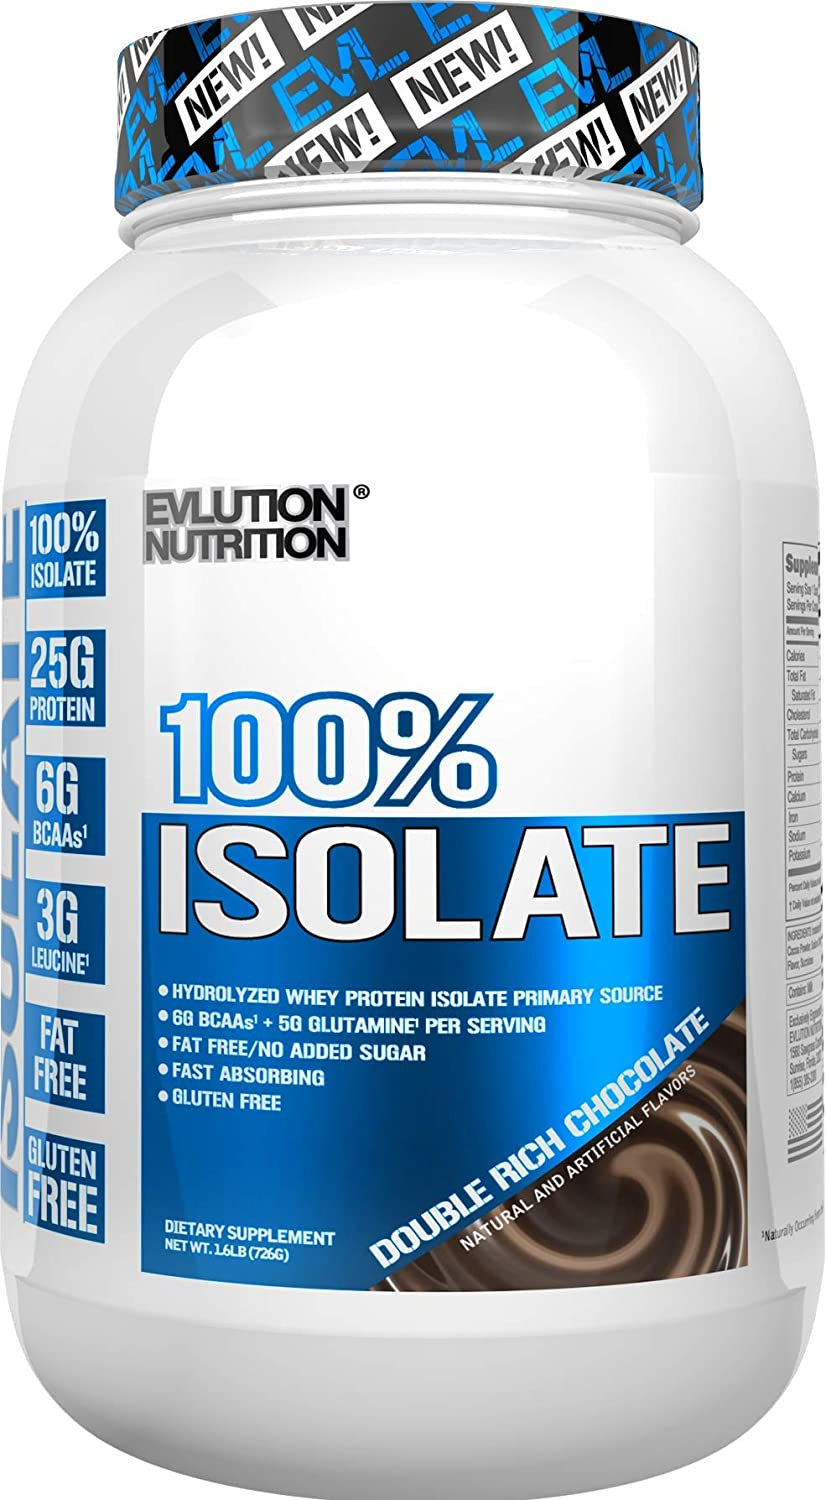 Evlution Nutrition 100 Isolate, Hydrolyzed Whey Isolate Protein Powder, 25 G of Fast Absorbing Protein, No Sugar Added, Low-Carb, Gluten-Free Double Rich Chocolate, 1.6 LB